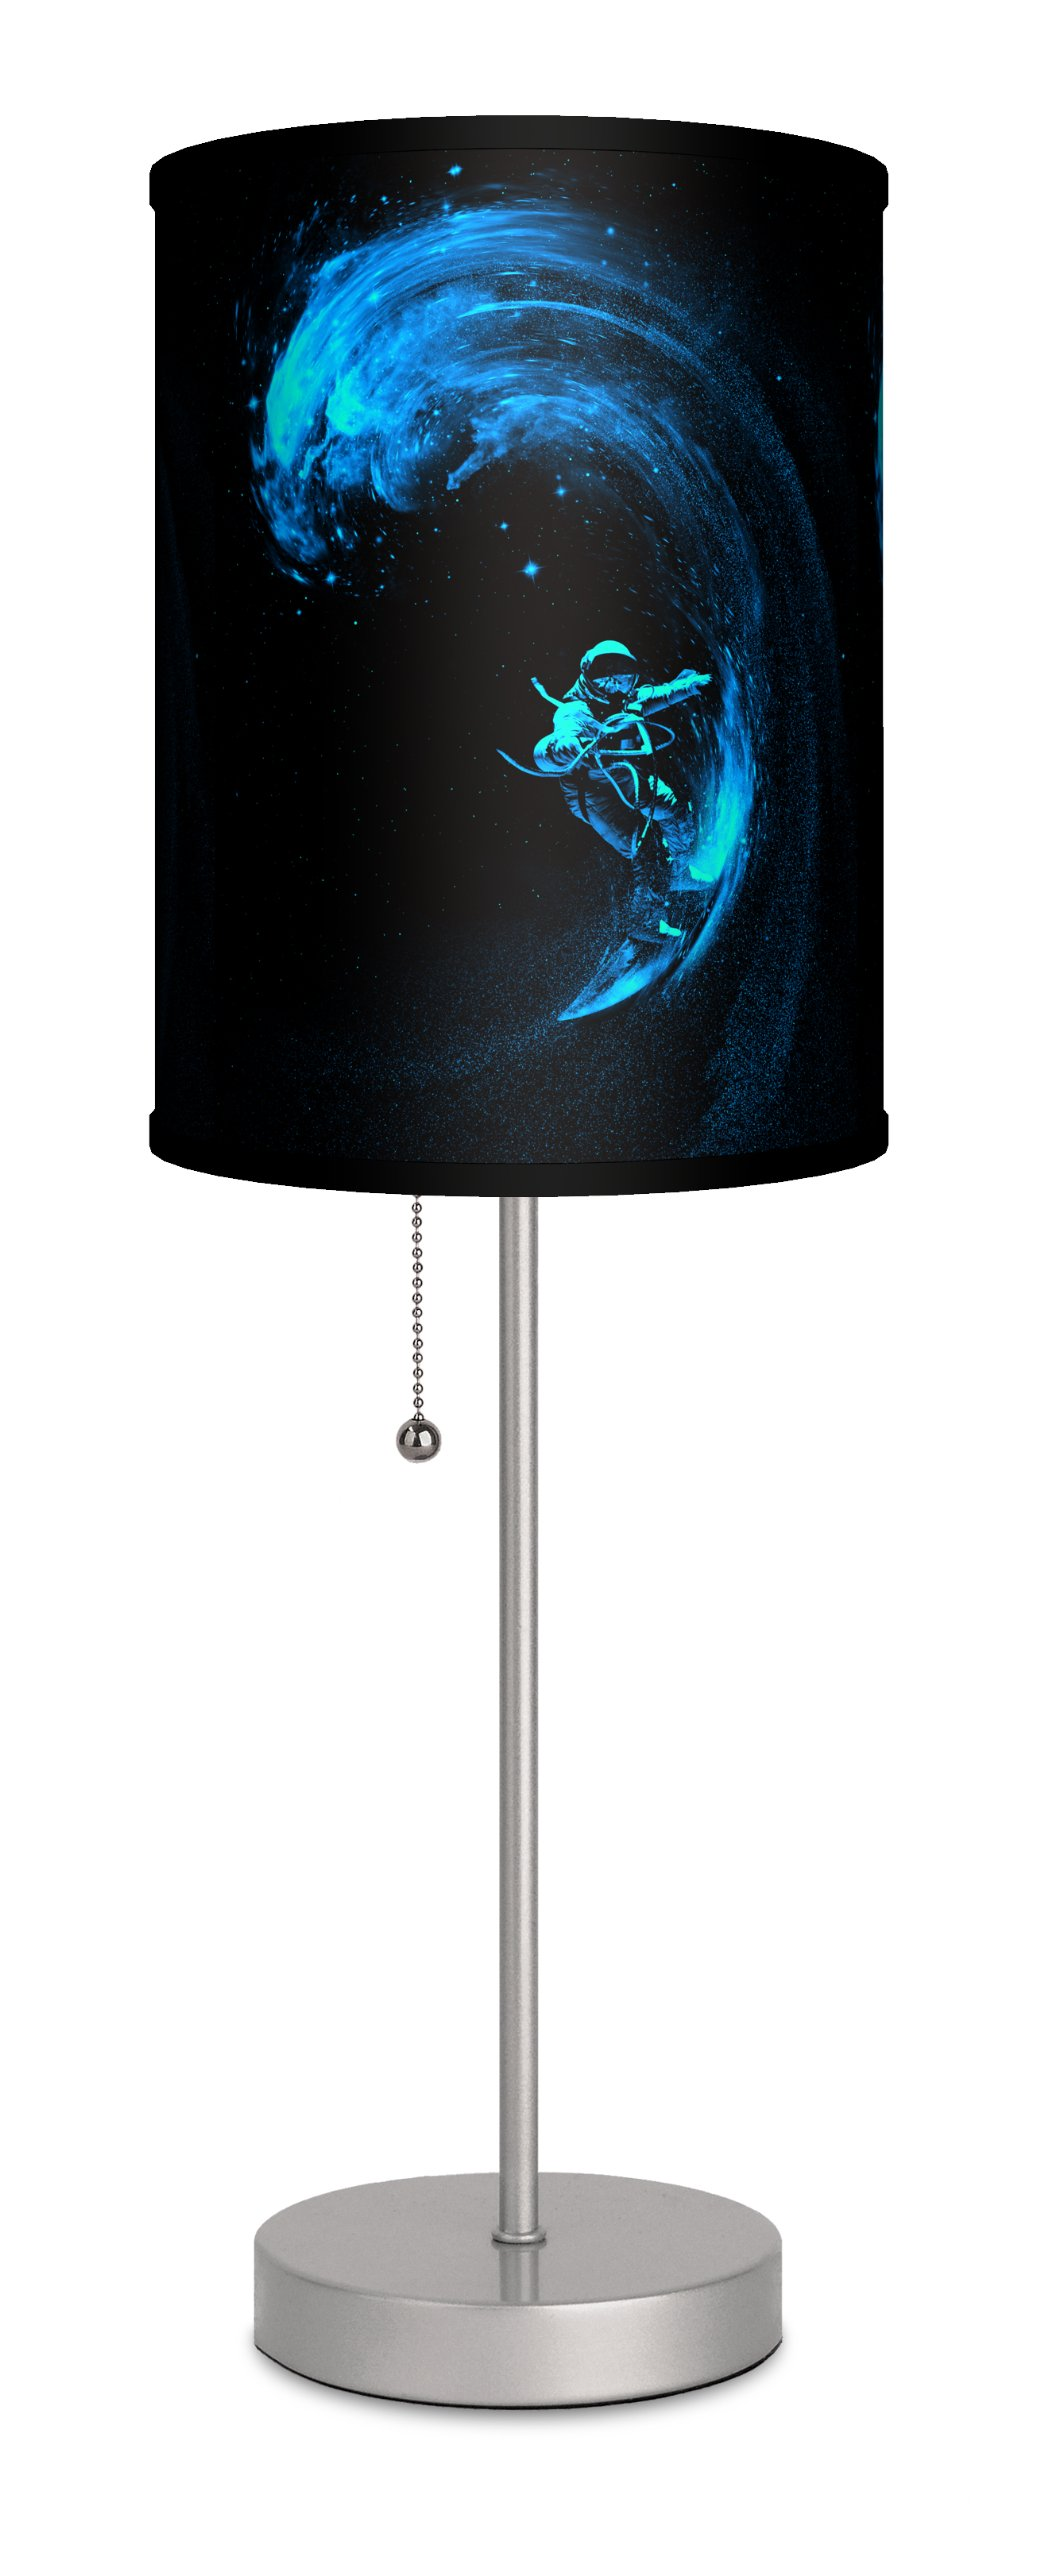 Lamp-In-A-Box SPS-FAR-NBSPA Featured Artists Nice Bleed Space Surfing Sport Lamp, Silver